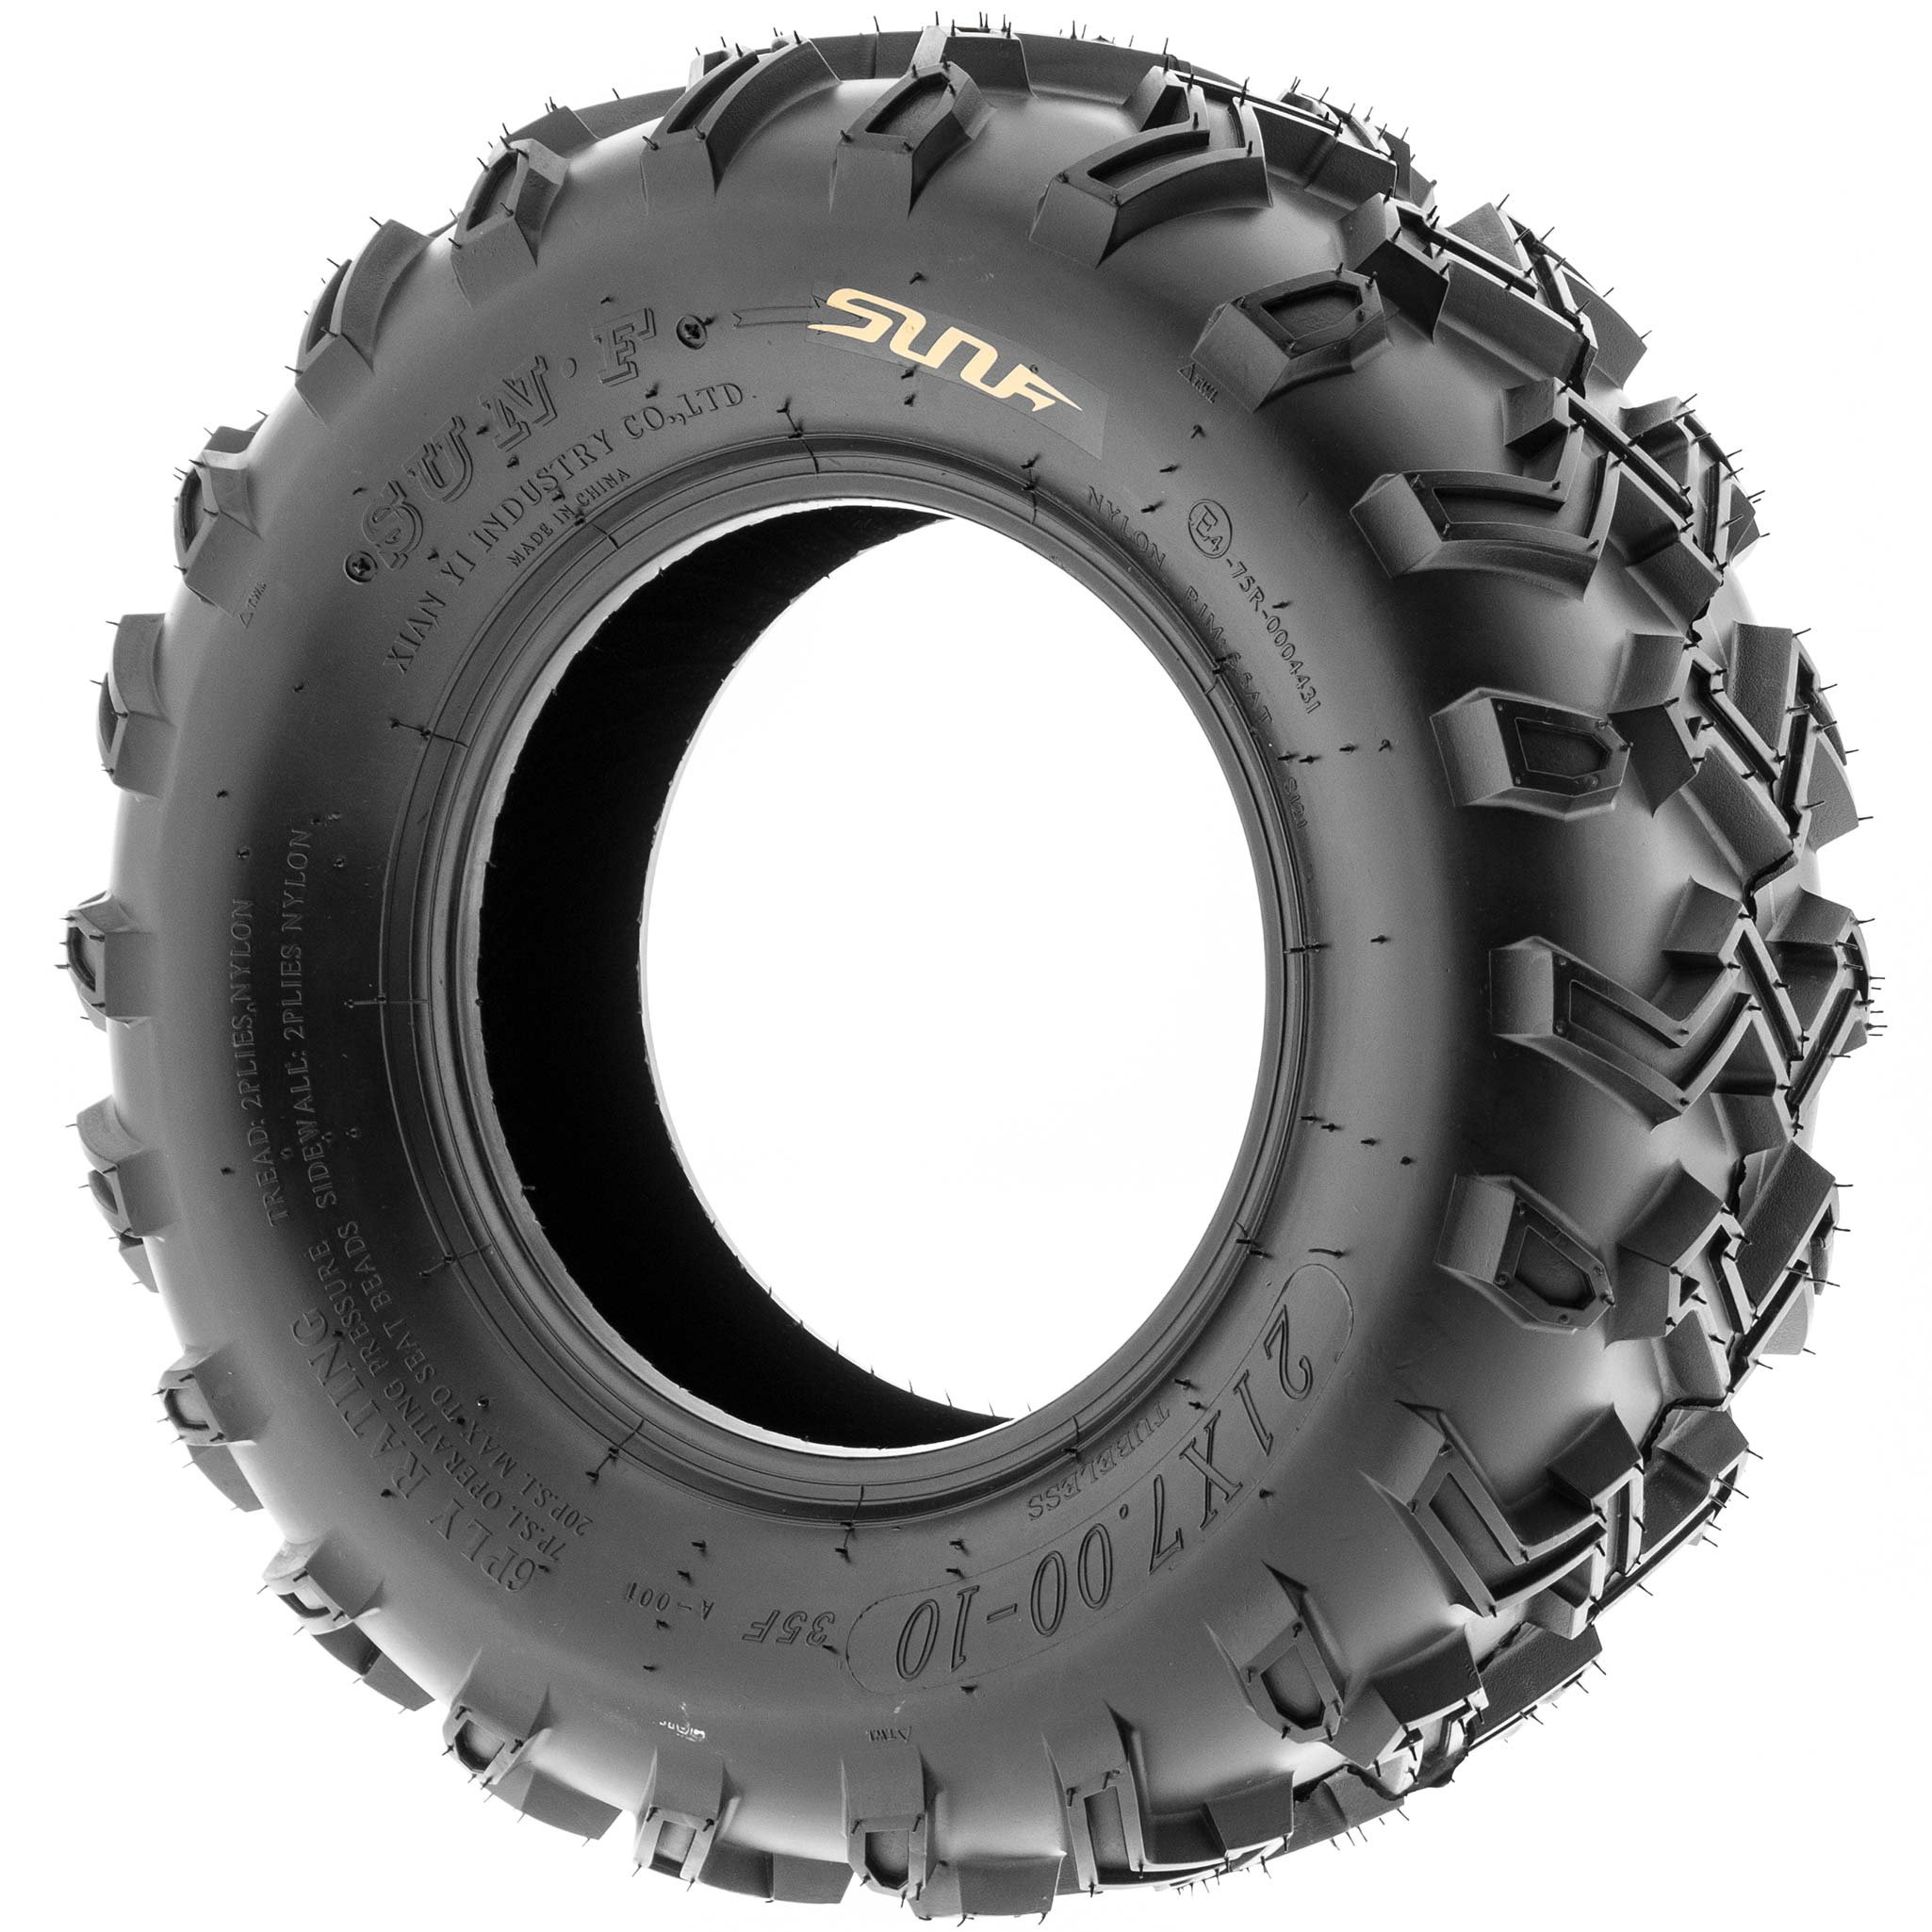 SunF 21x7-10 21x7x10 ATV UTV All Terrain Race Replacement 6 PR Tubeless Tires A001, [Set of 2] by SunF (Image #4)